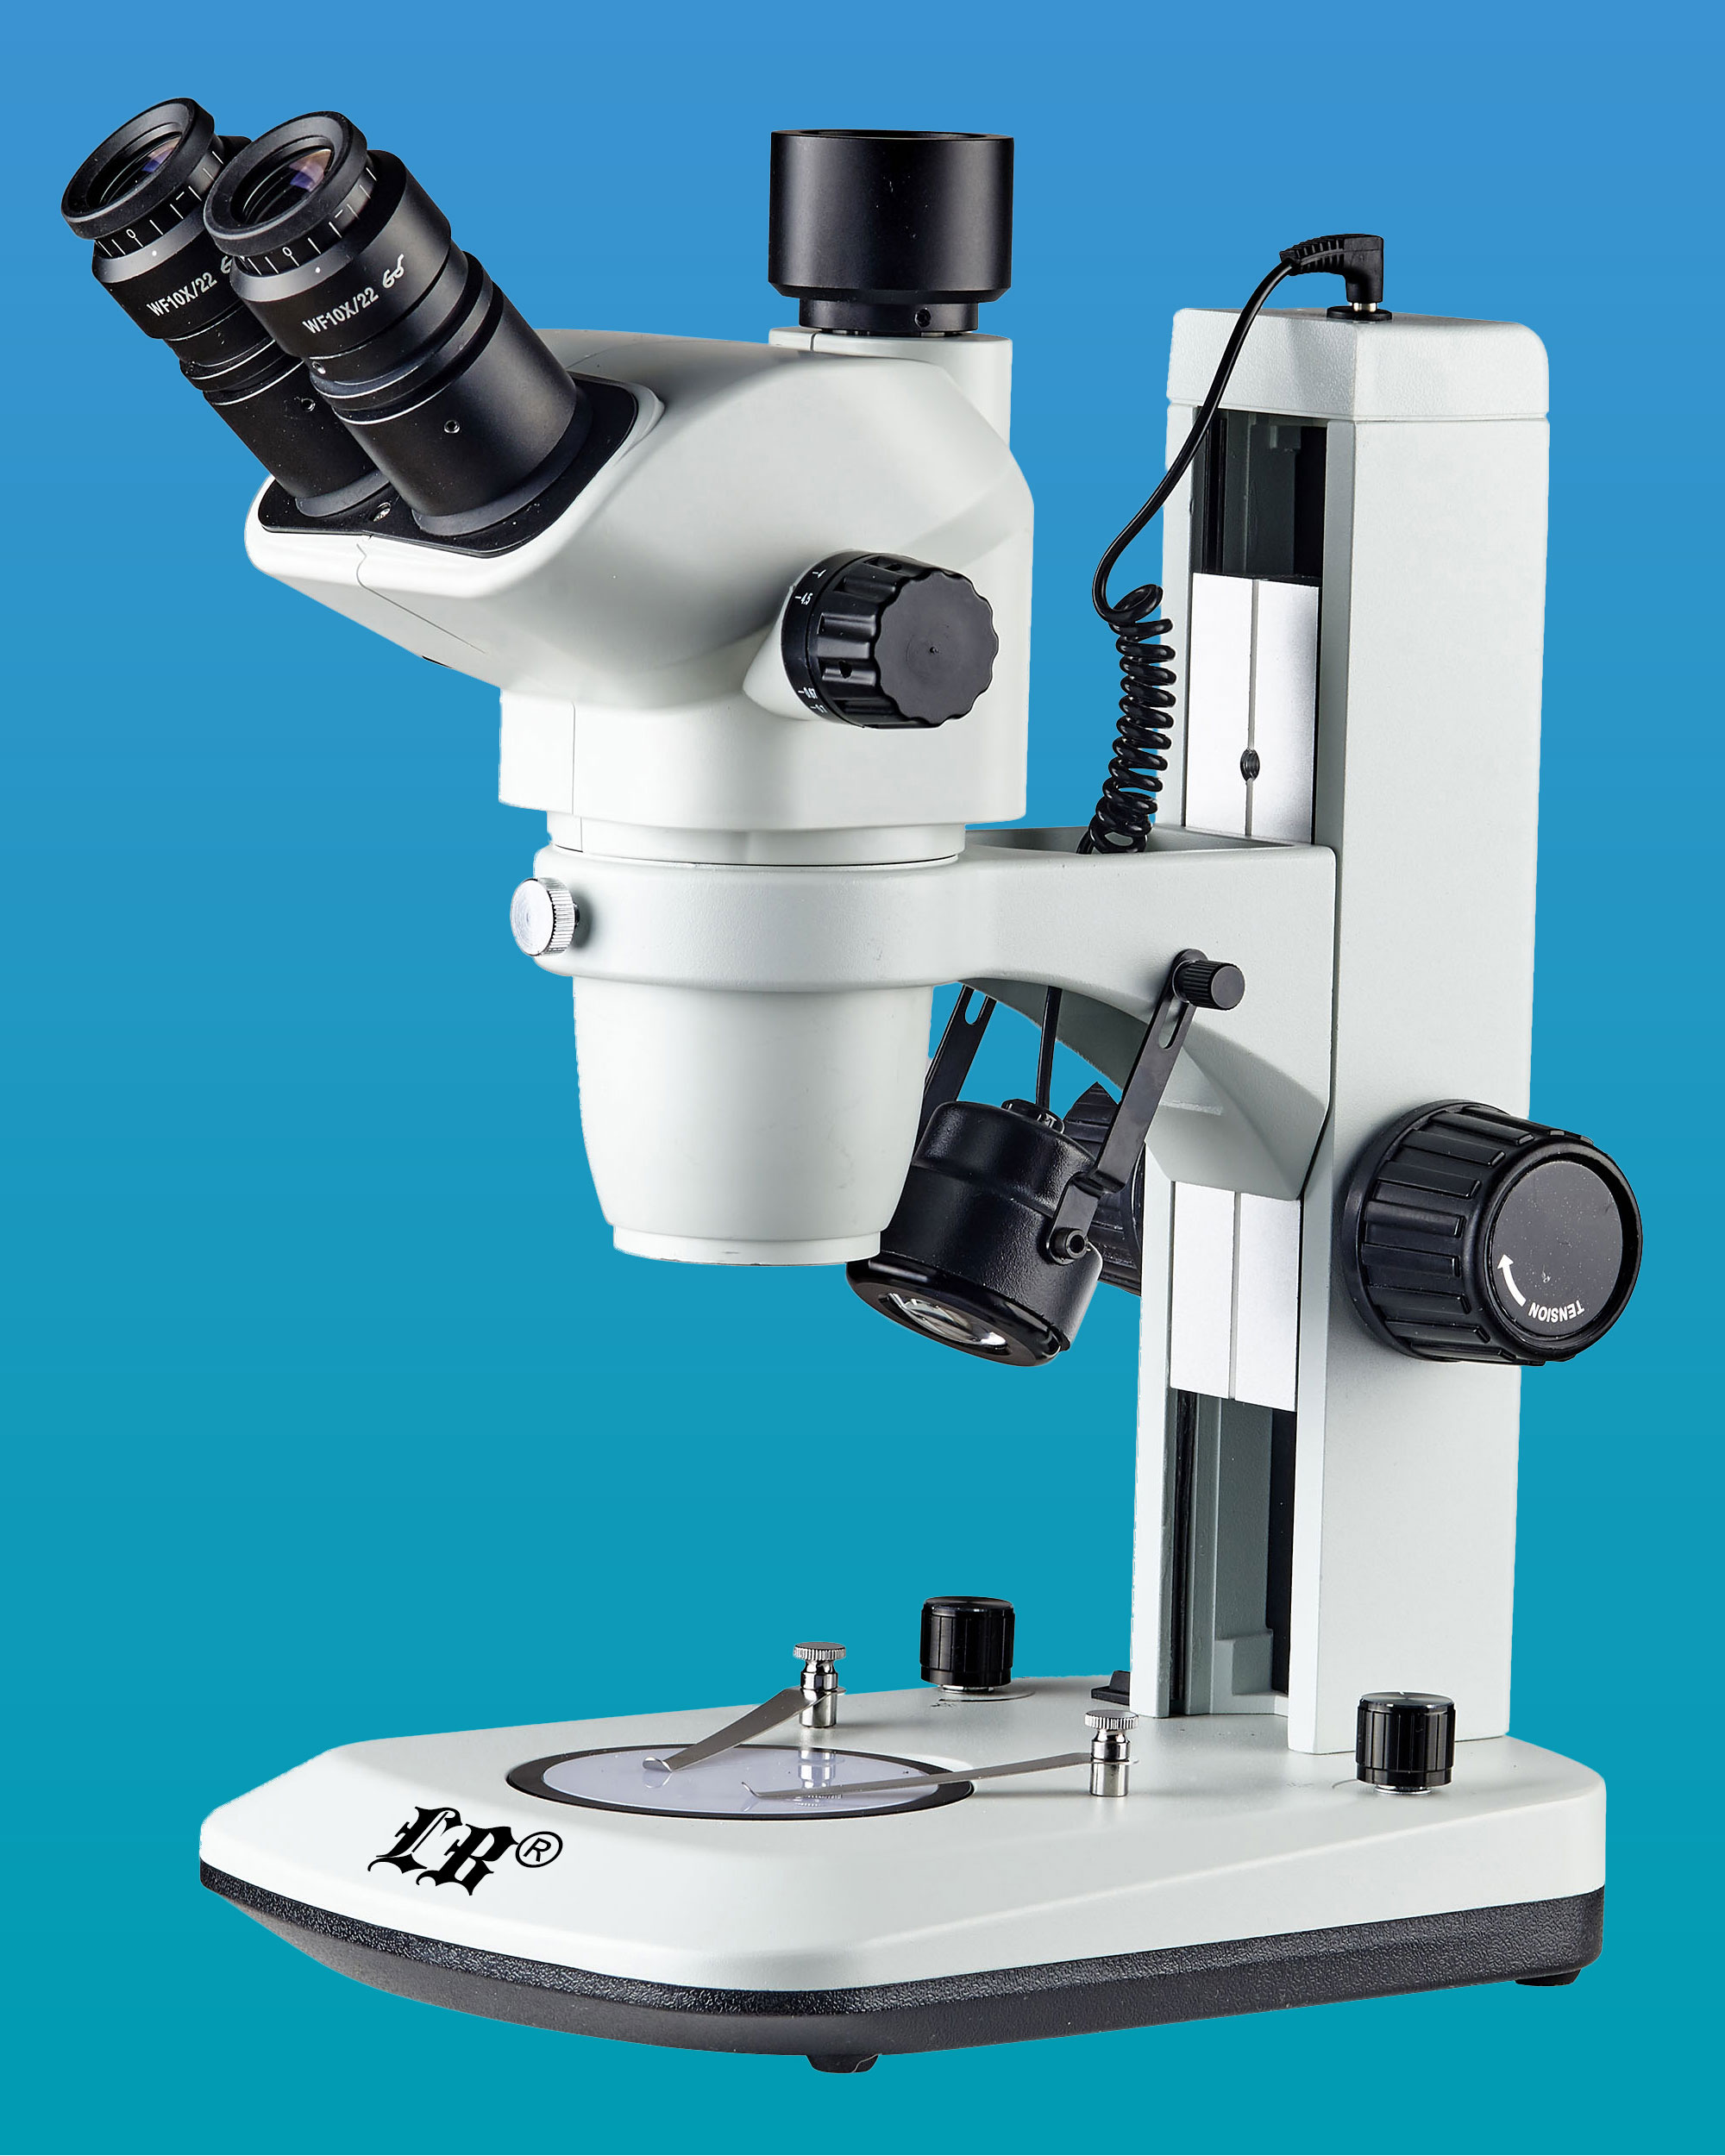 [LB-331] Trinocular Stereo Zoom Microscope w/ LED Illumination